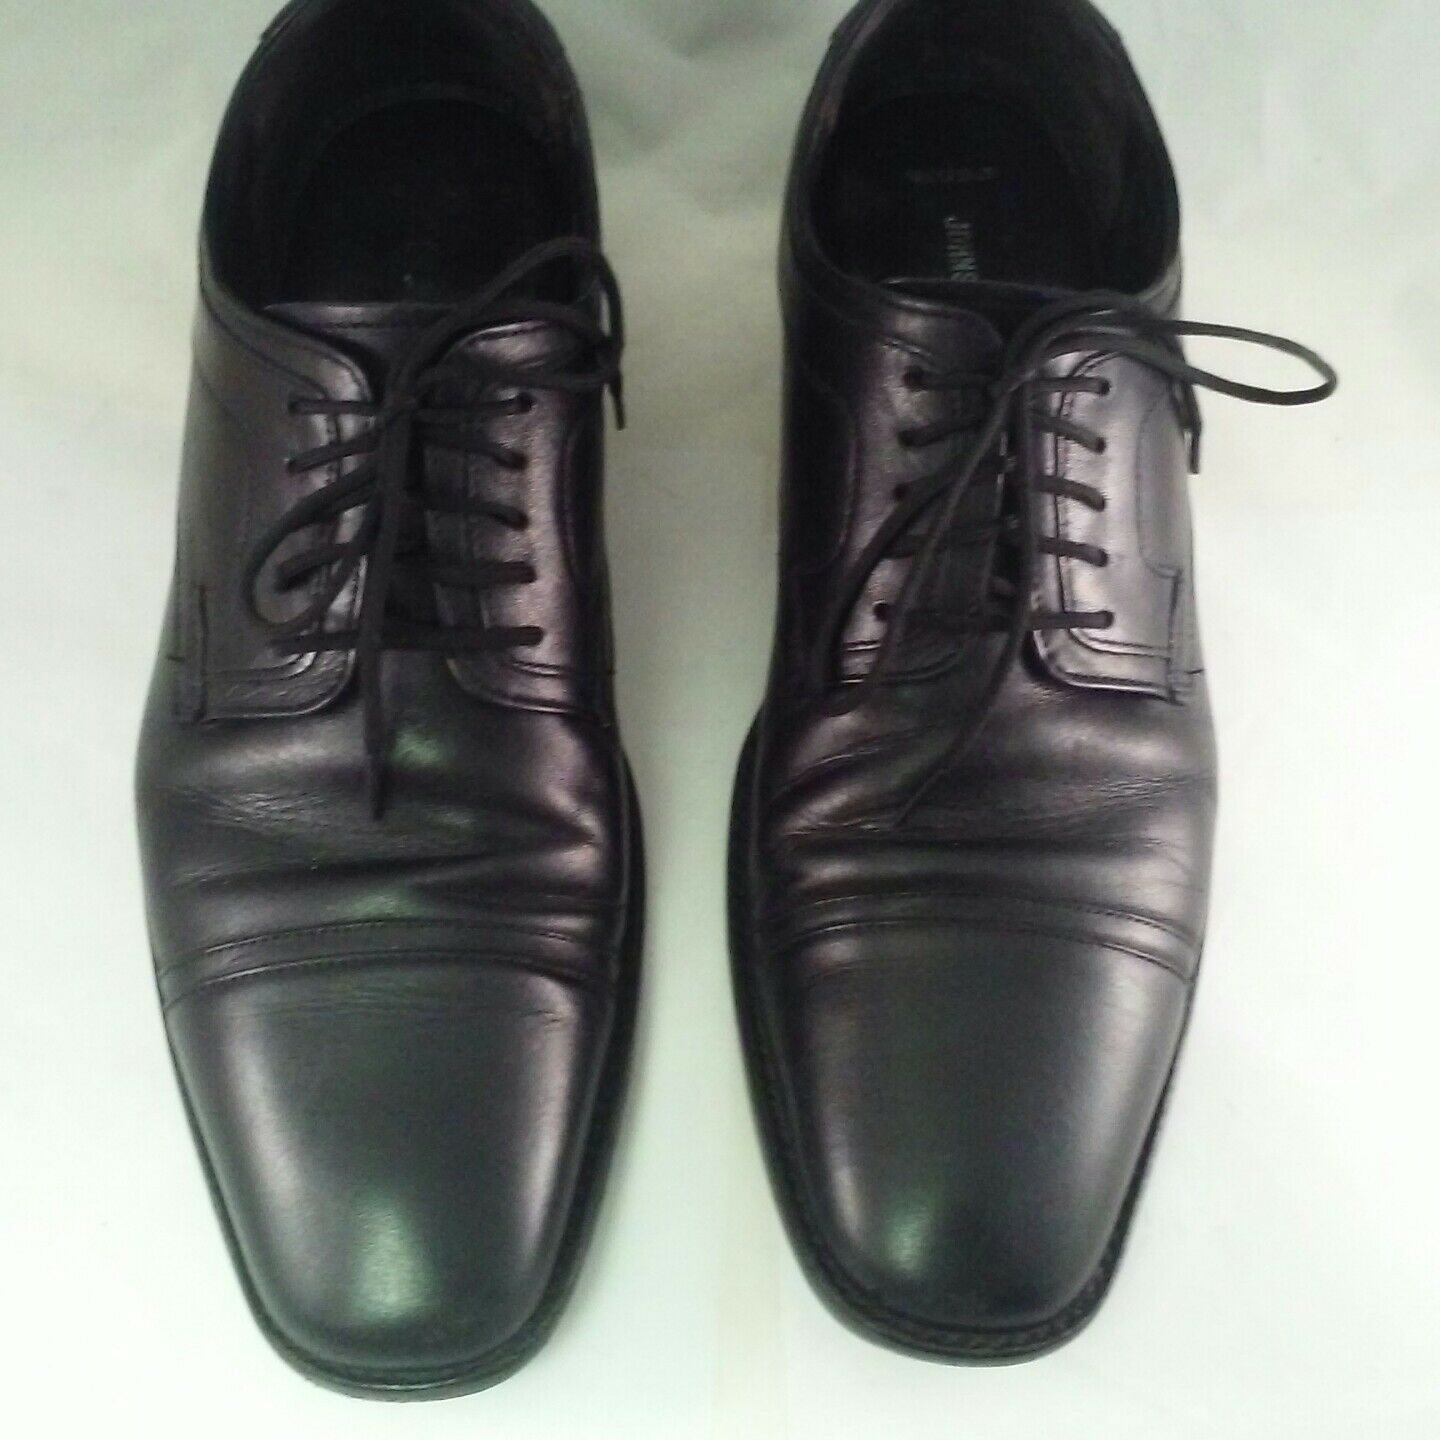 acquista online oggi Johnston & Murphy Uomo Uomo Uomo Larsey 2-Cap Toe Oxford 20-1277 nero US 10.5  in linea